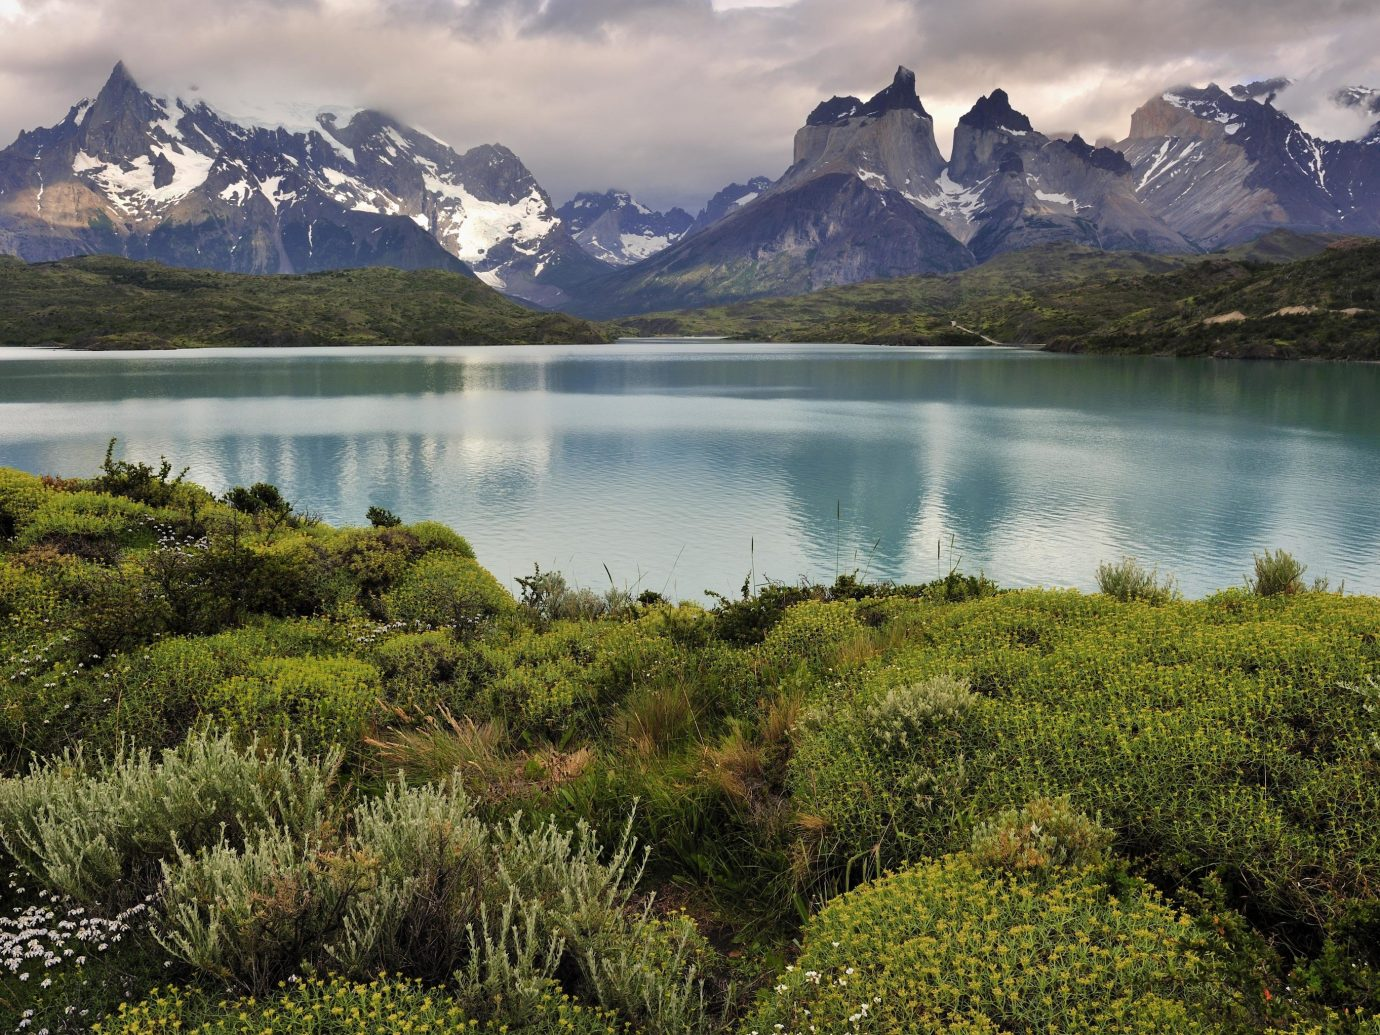 Jetsetter Guides Packing Tips Travel Tips Trip Ideas mountain grass outdoor sky highland Nature mountainous landforms water Lake wilderness River atmospheric phenomenon loch tarn reflection mountain range fell reservoir hill landscape fjord meadow plateau national park valley pond surrounded hillside lush